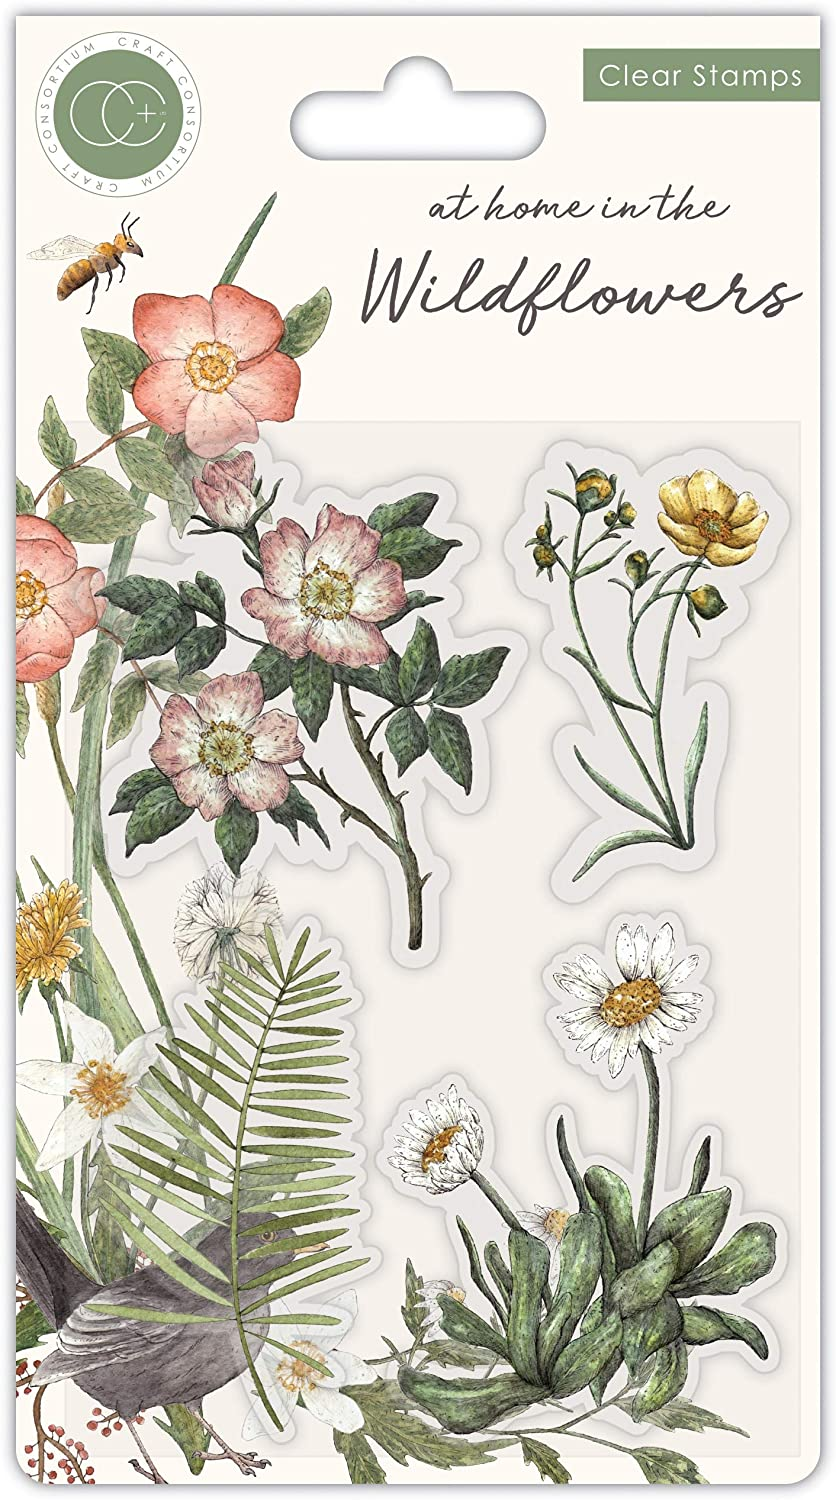 CRAFT CONSORTIUM LTD Stamp, Flora, at Home in The Wildflowers